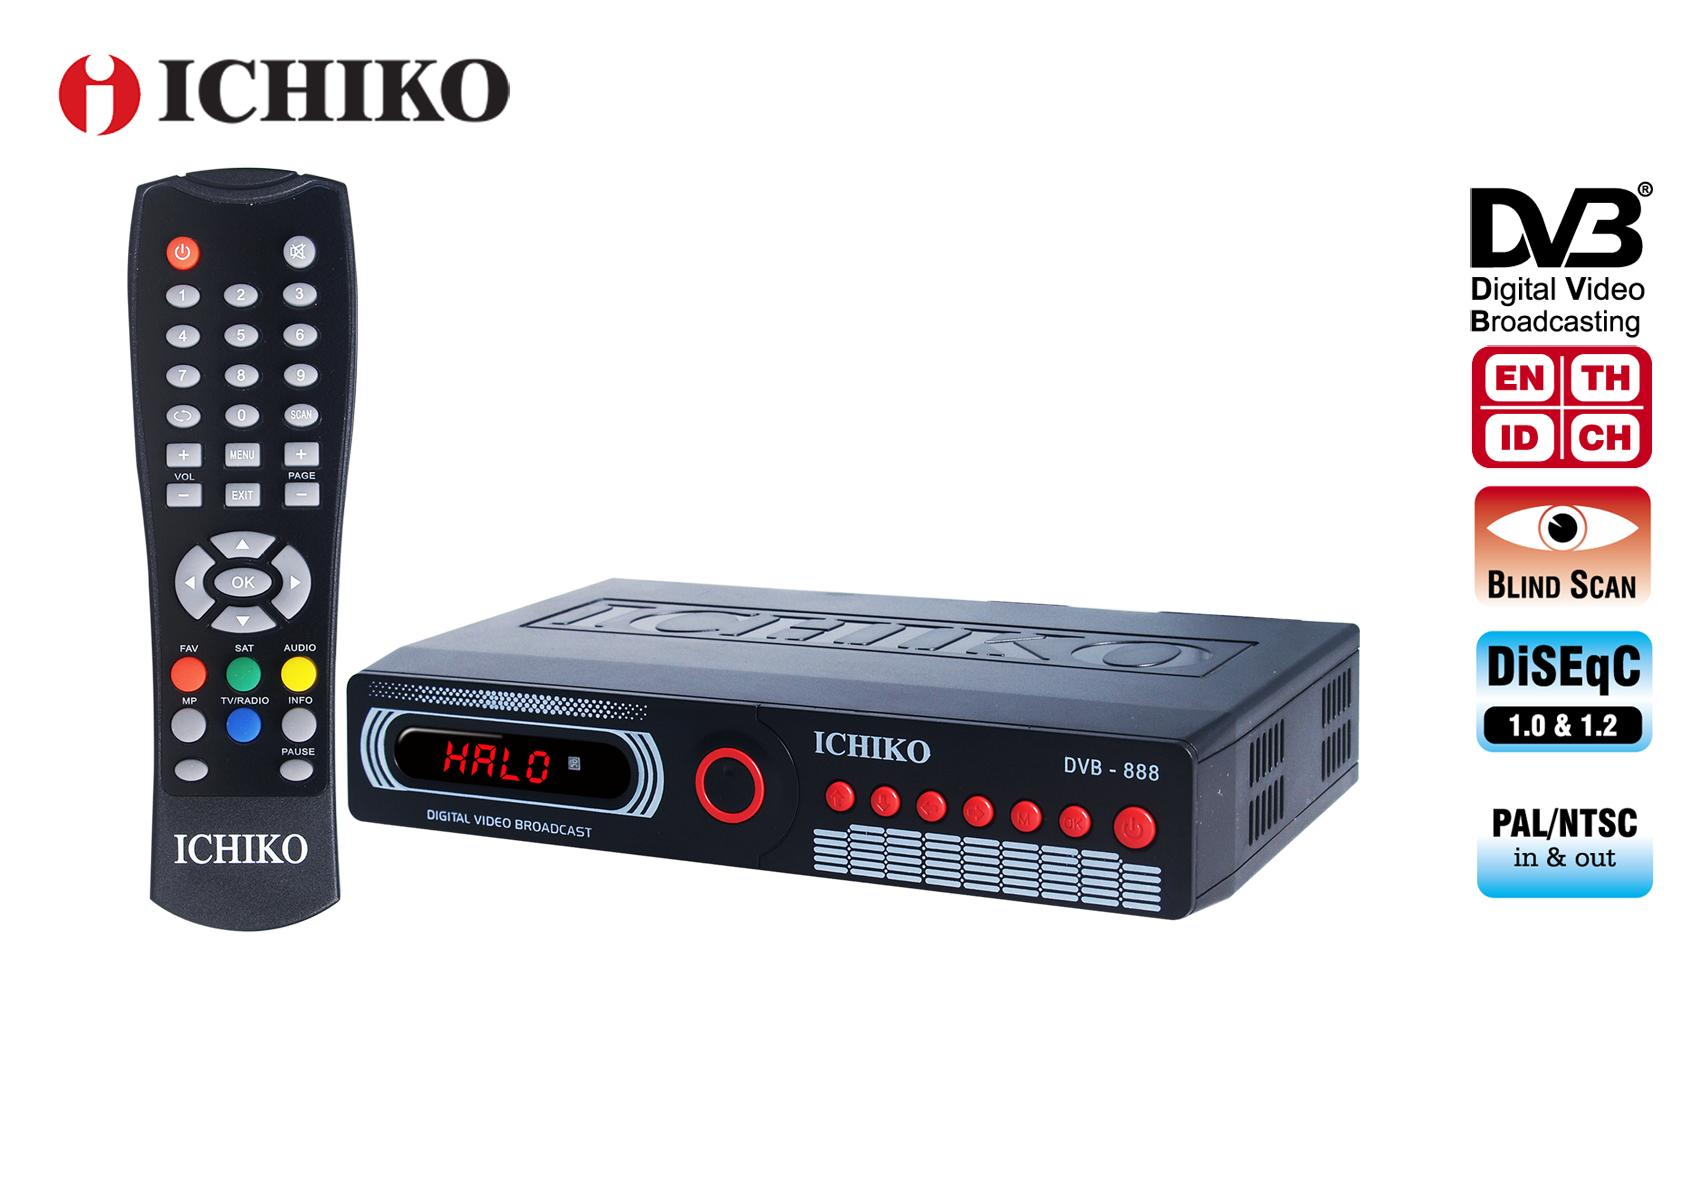 Ichiko Satellite Receiver Dvbs (model 888 C1) By Ichikostore.